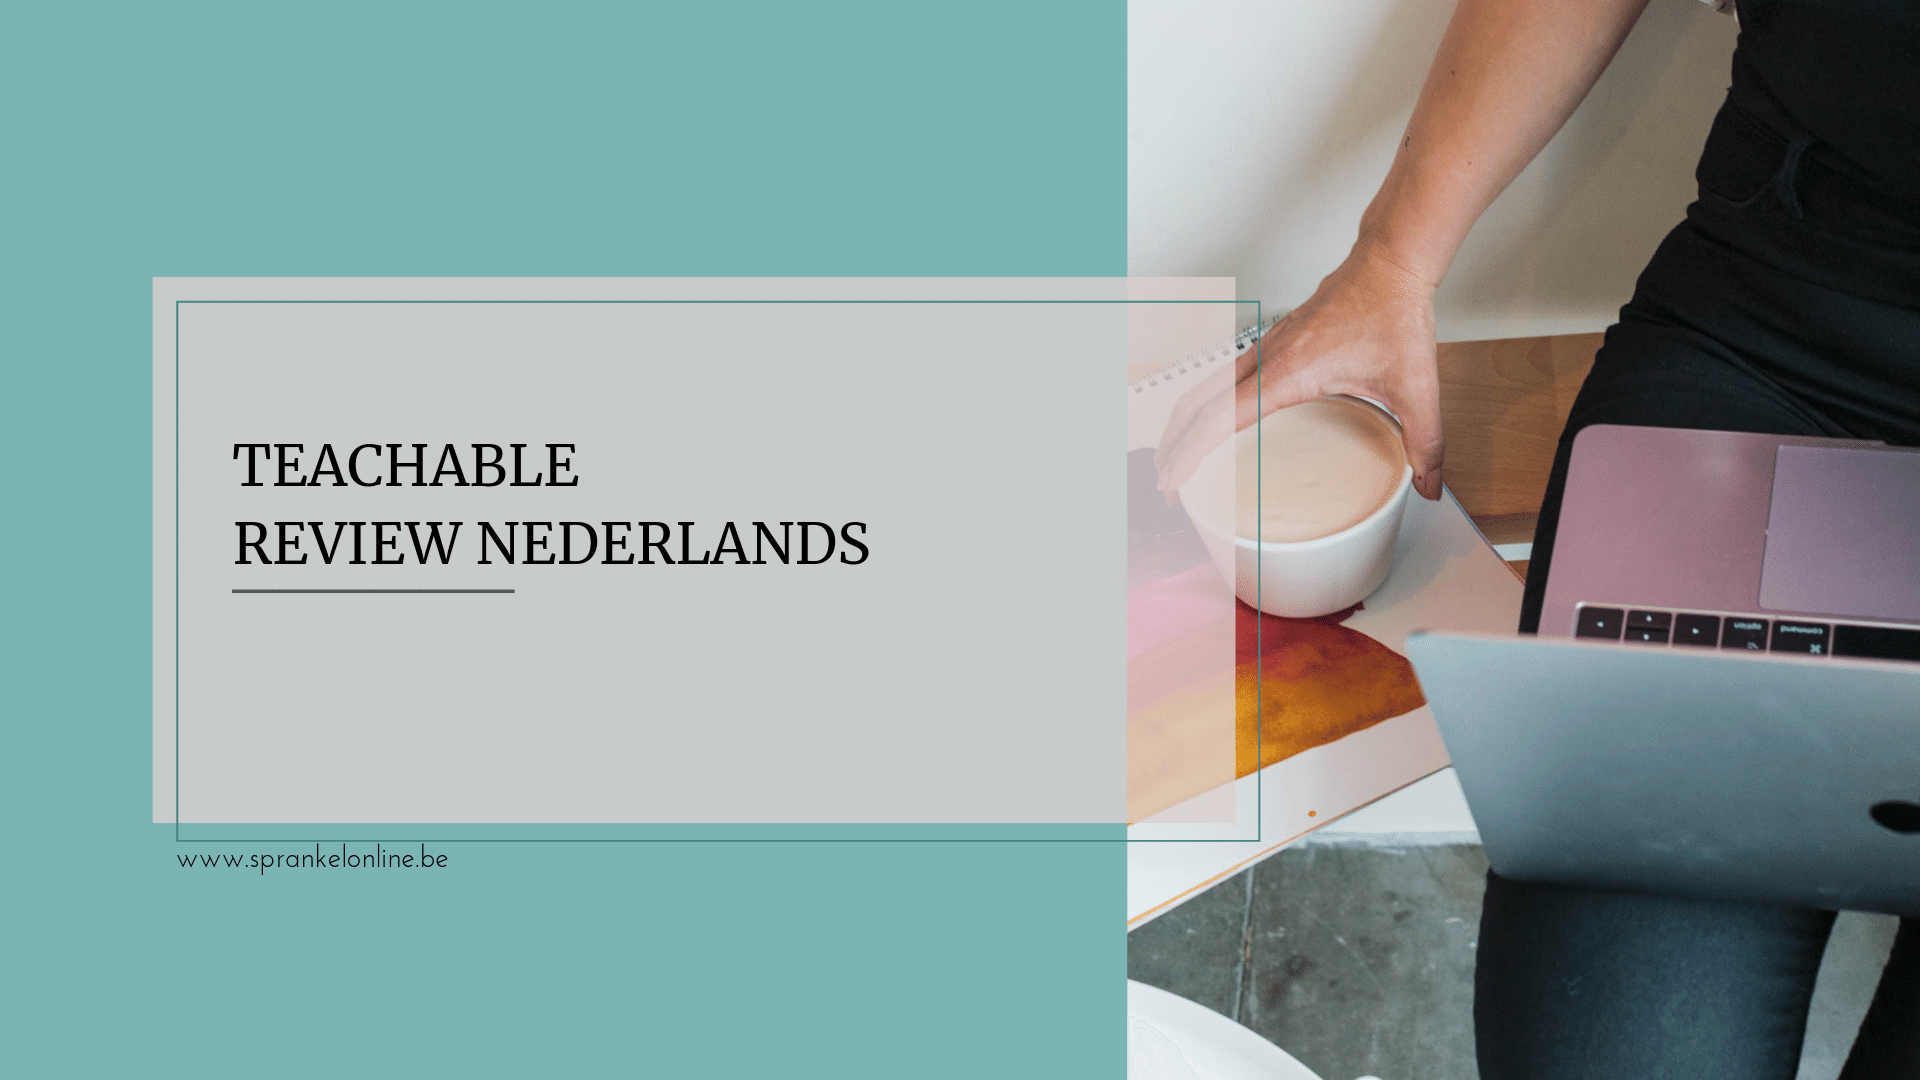 Teachable Review Nederlands